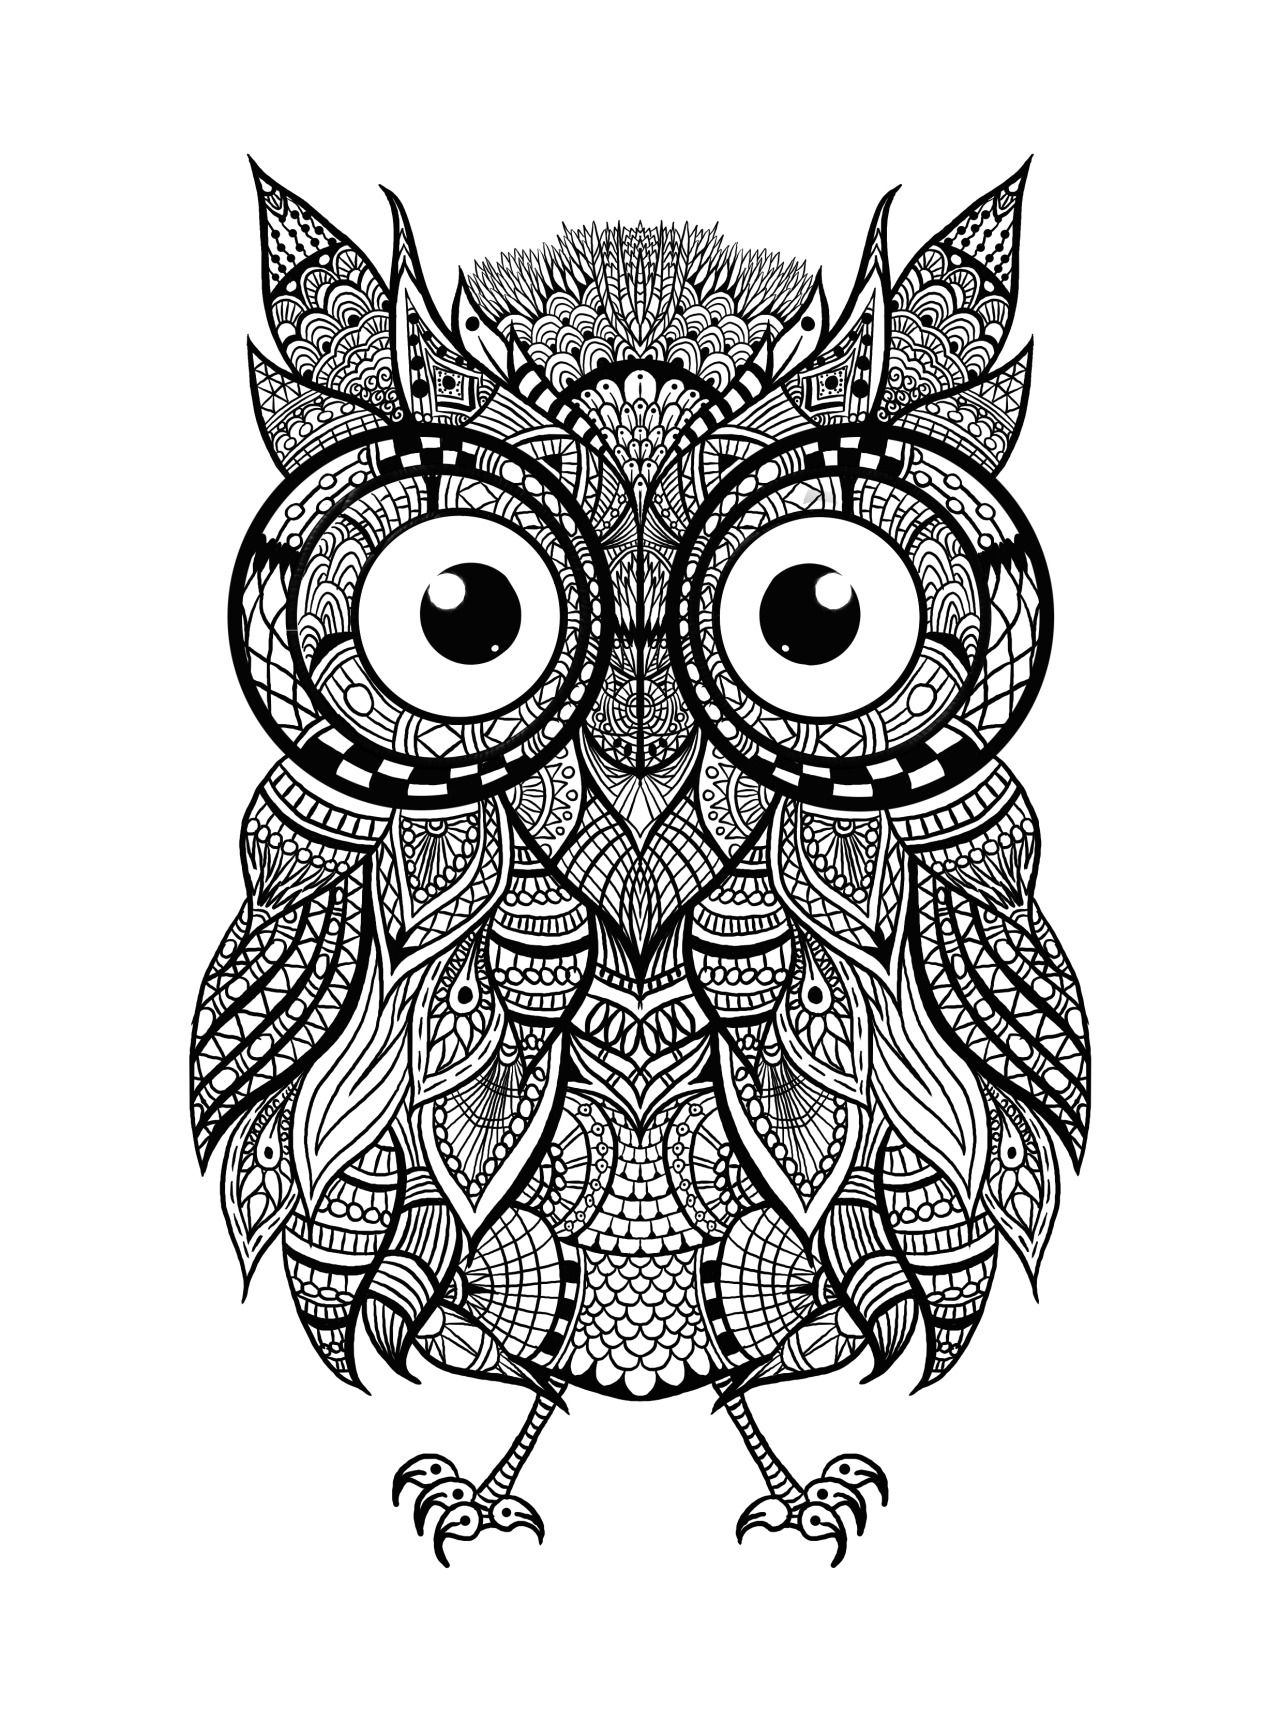 Hey everyone Check out this awesome intricate owl for some adult